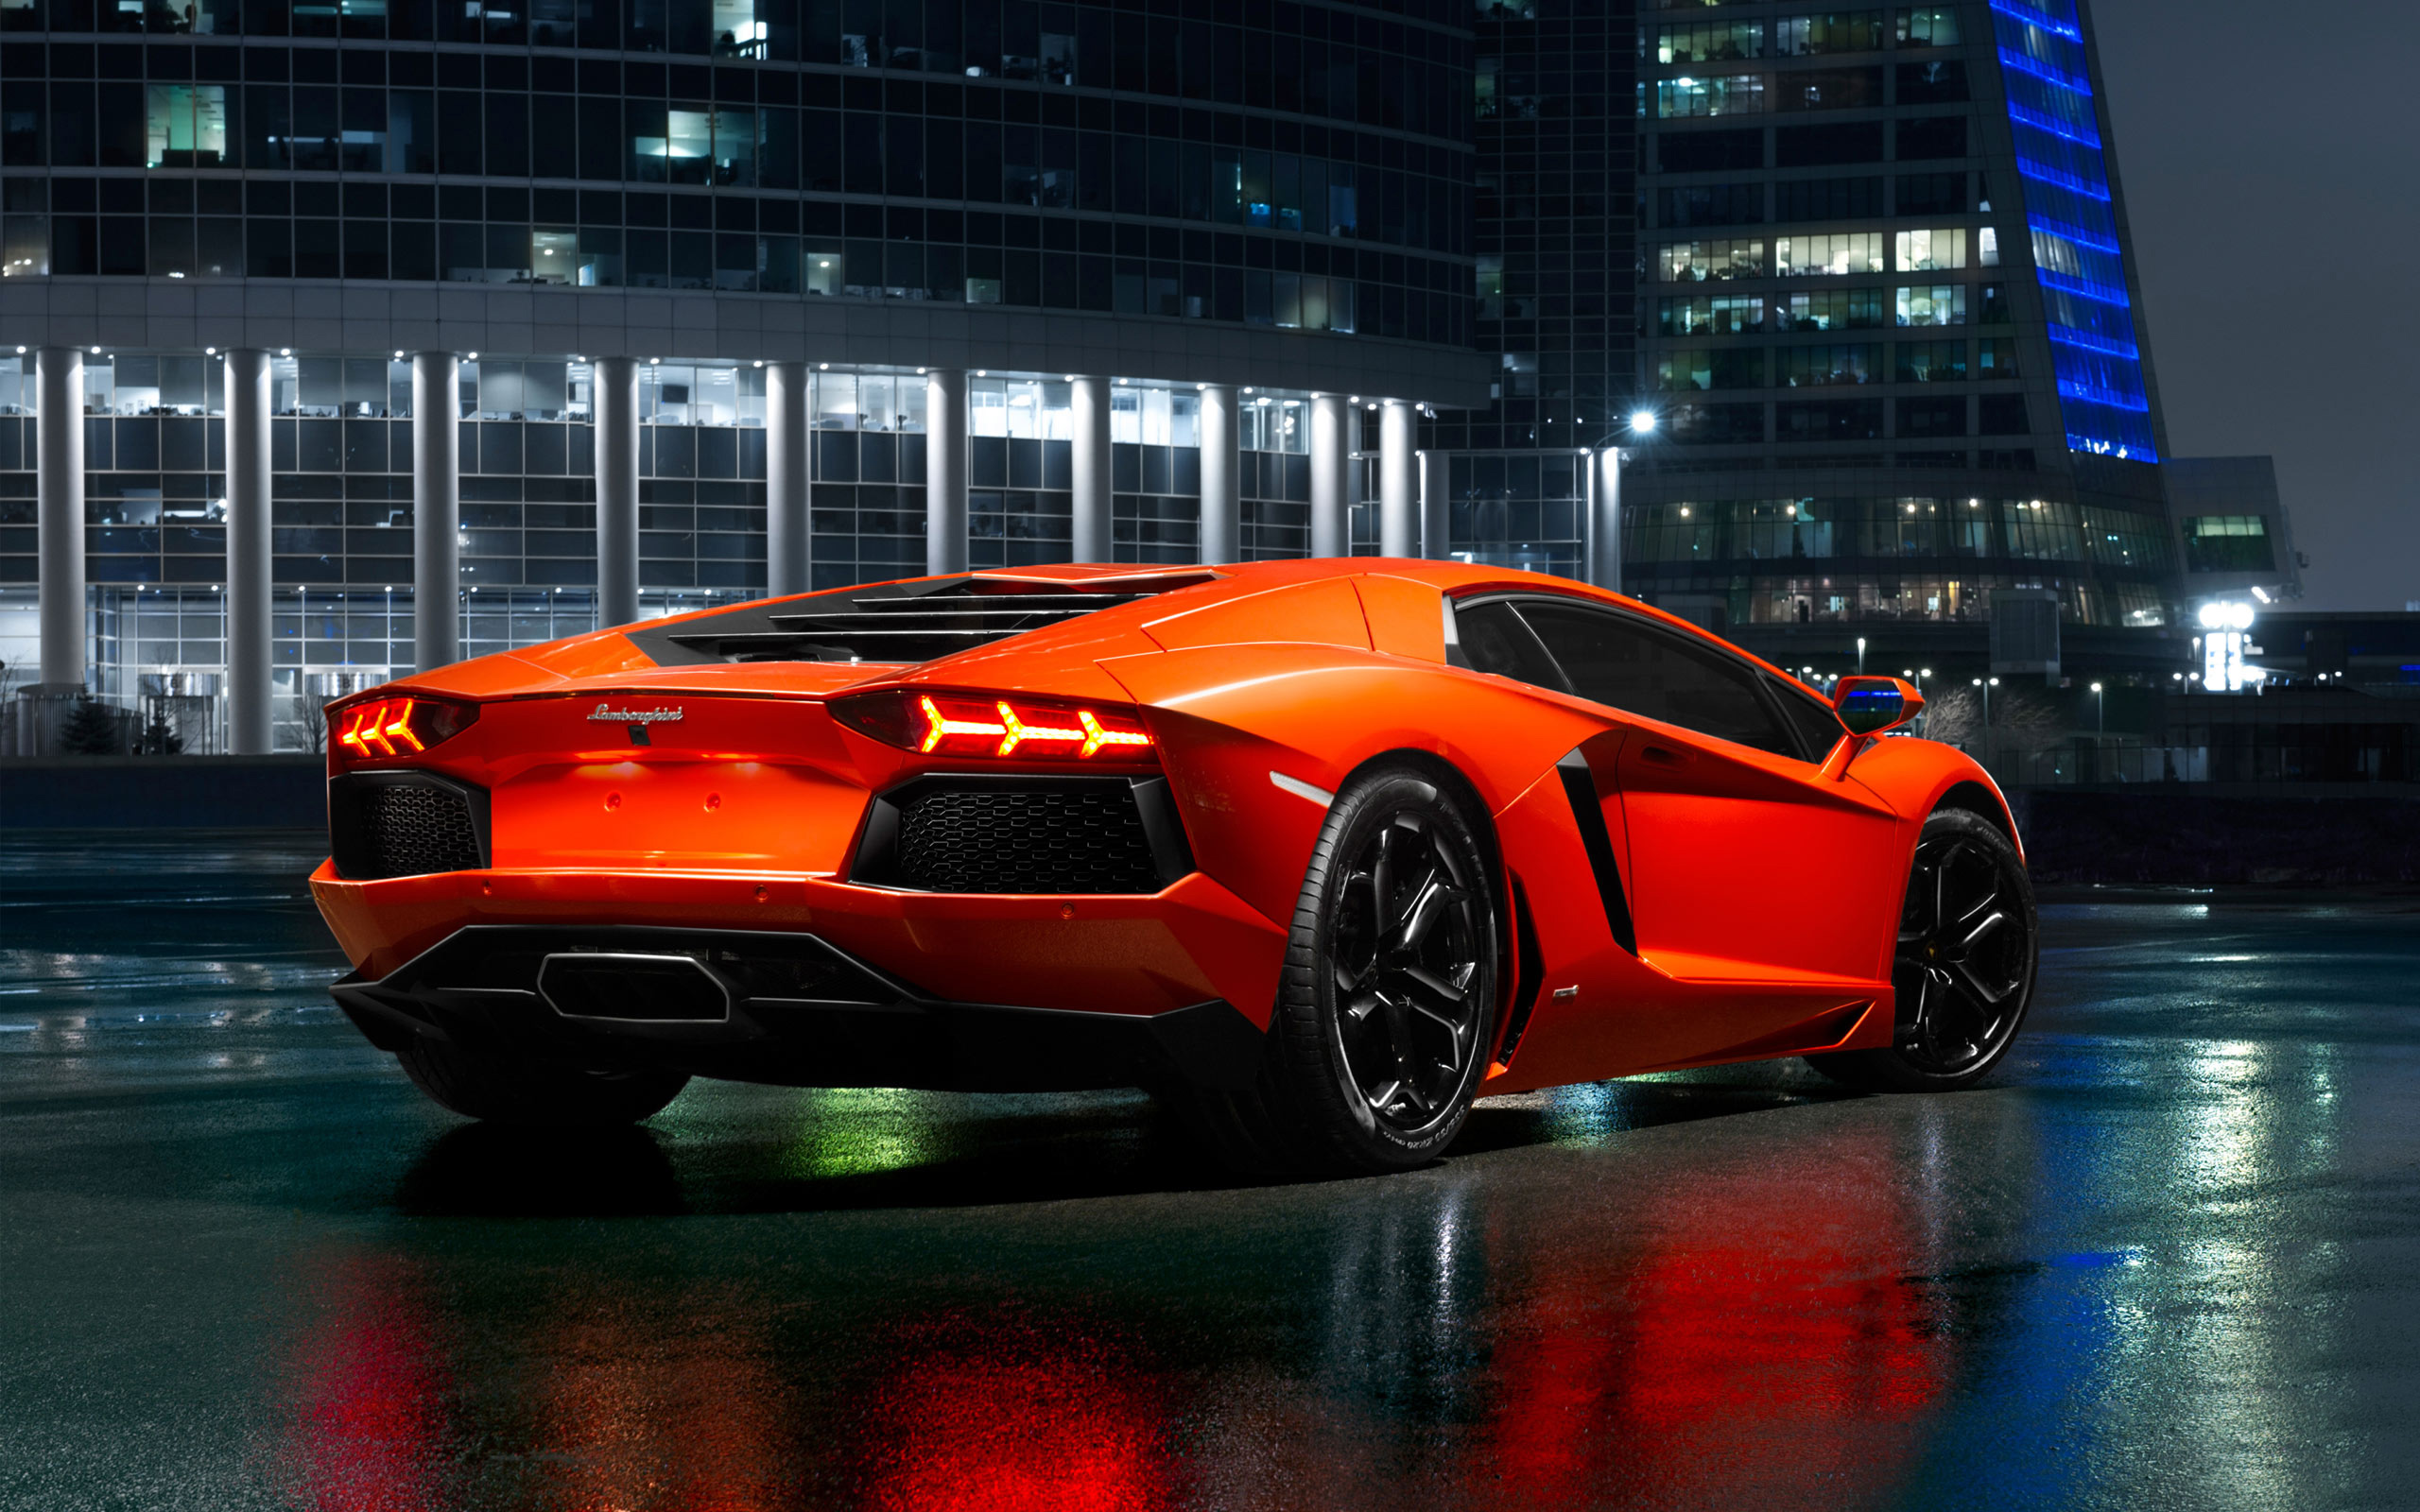 Lamborghini Aventador LP700 4 5 Wallpaper | HD Car ...